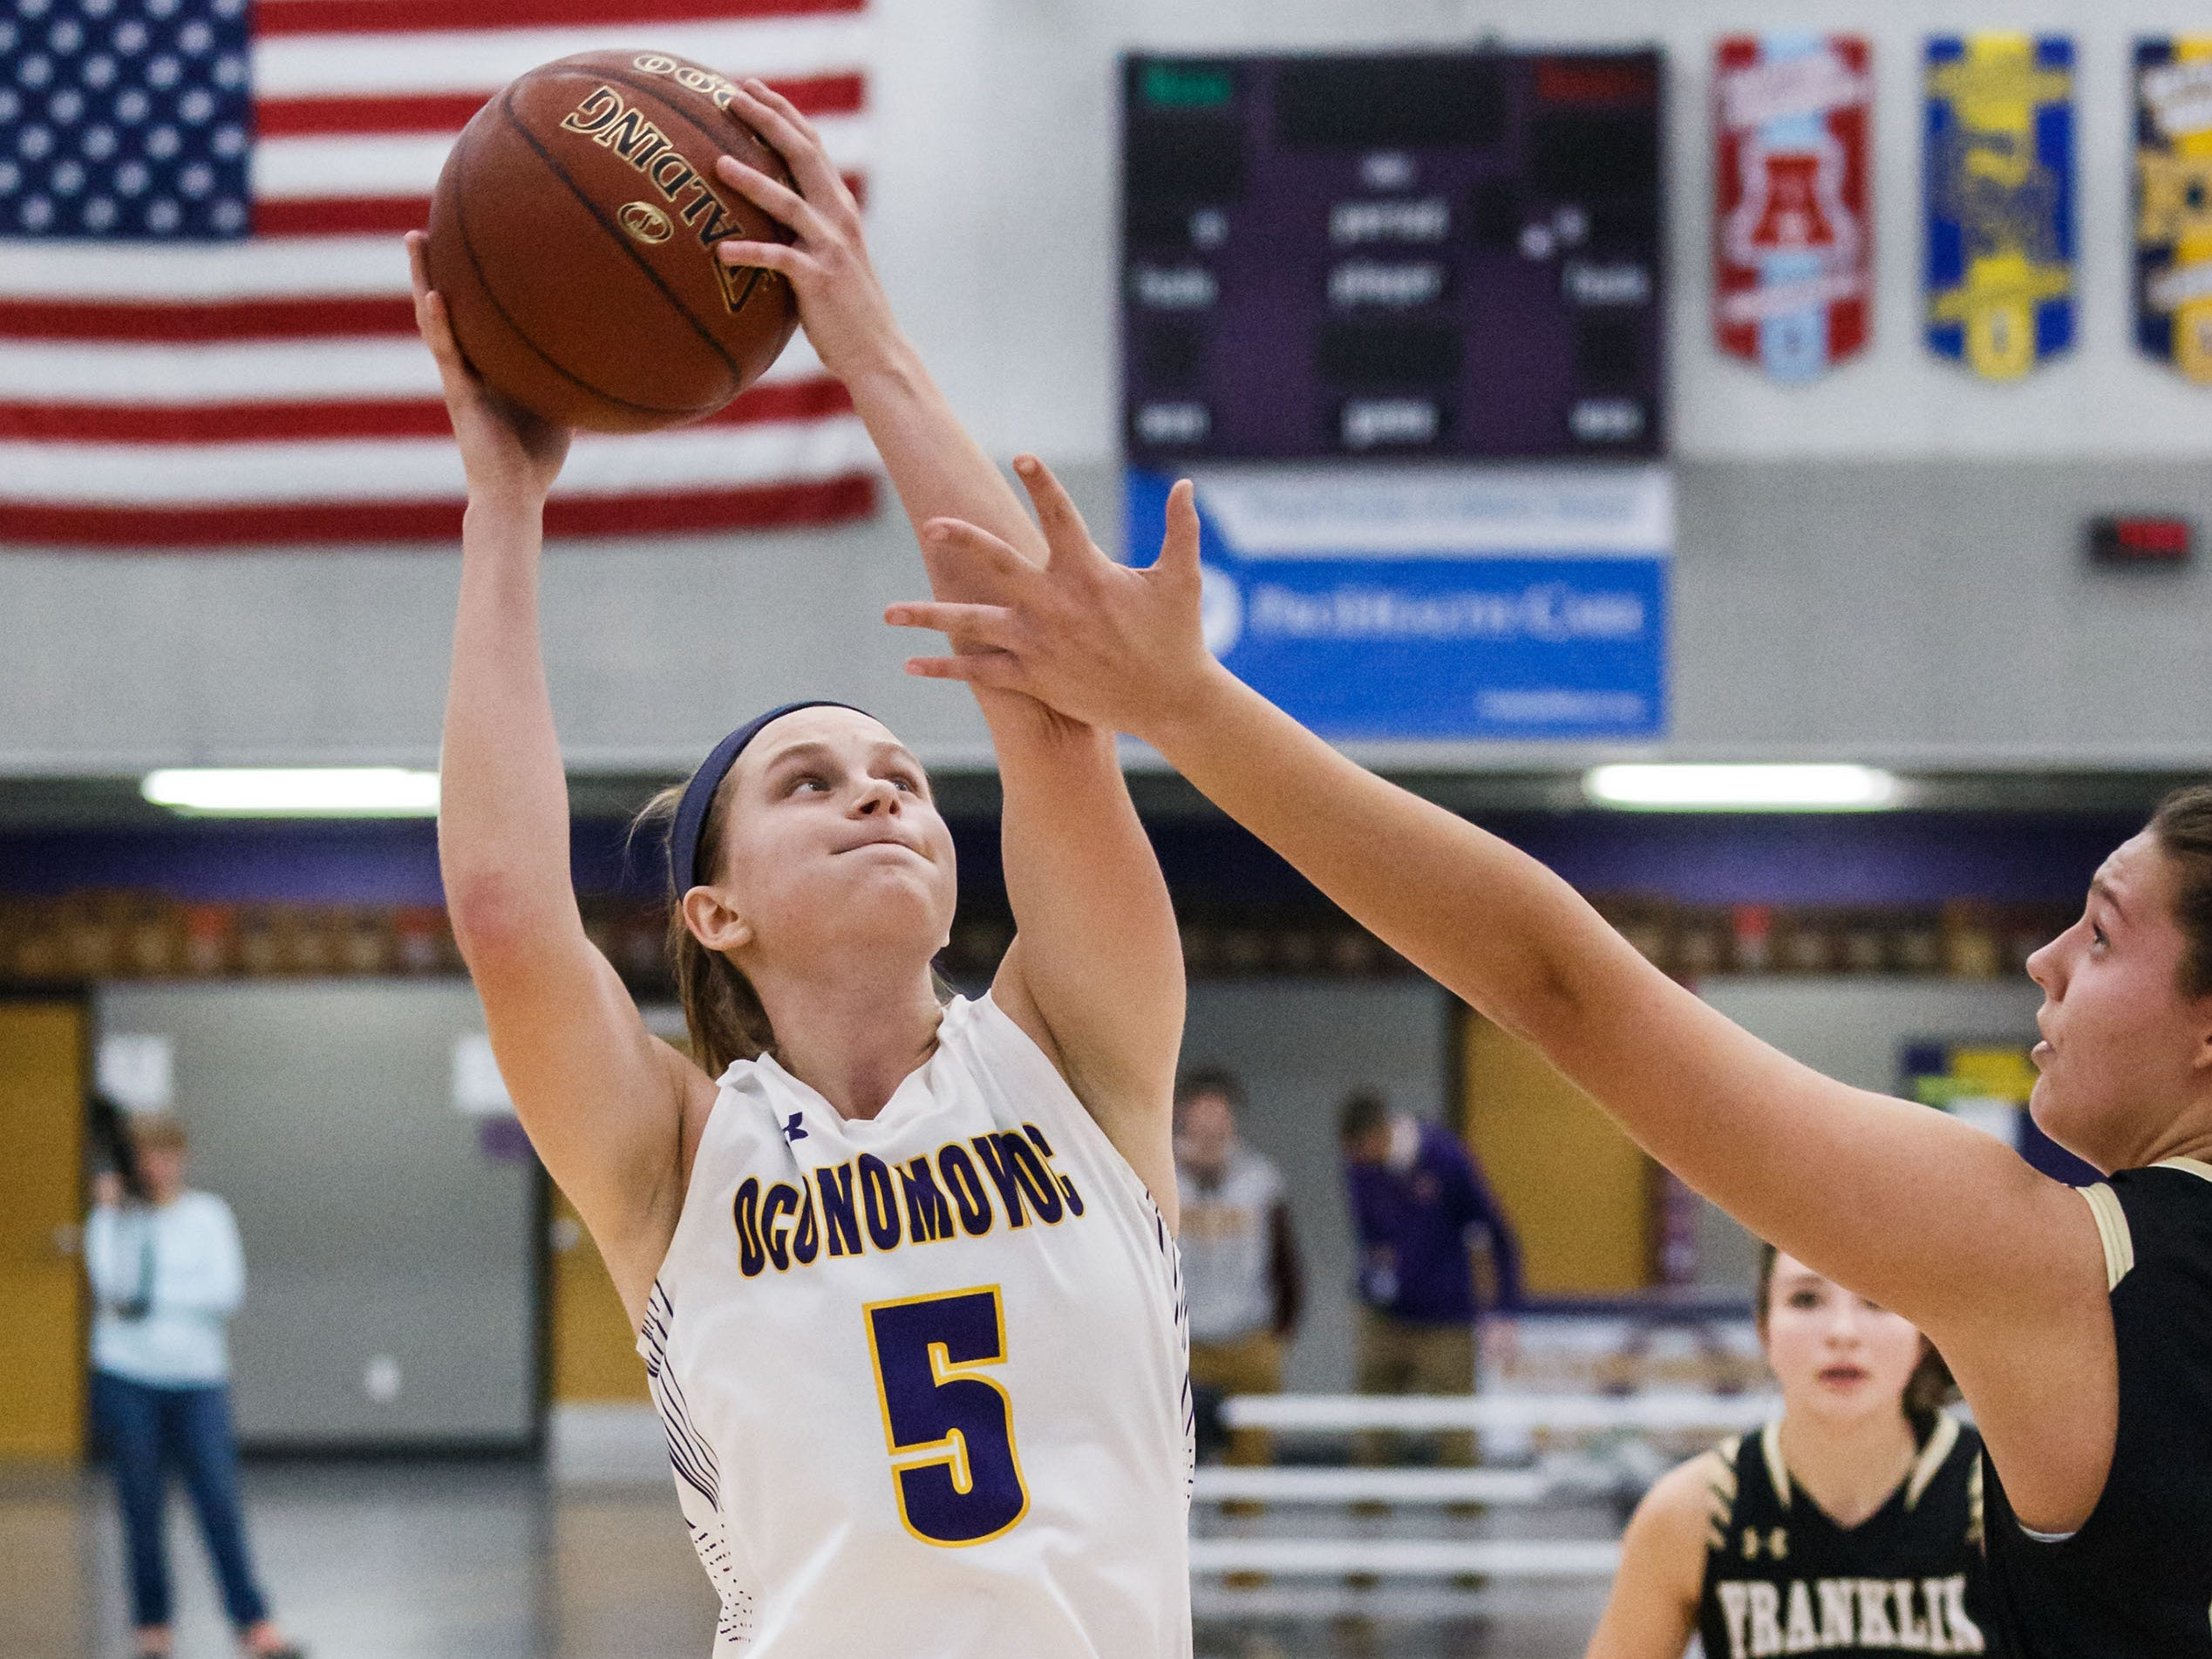 Oconomowoc junior Zoe Esveldt (5) pulls down a rebound during the game at home against Franklin on Monday, Nov. 19, 2018.